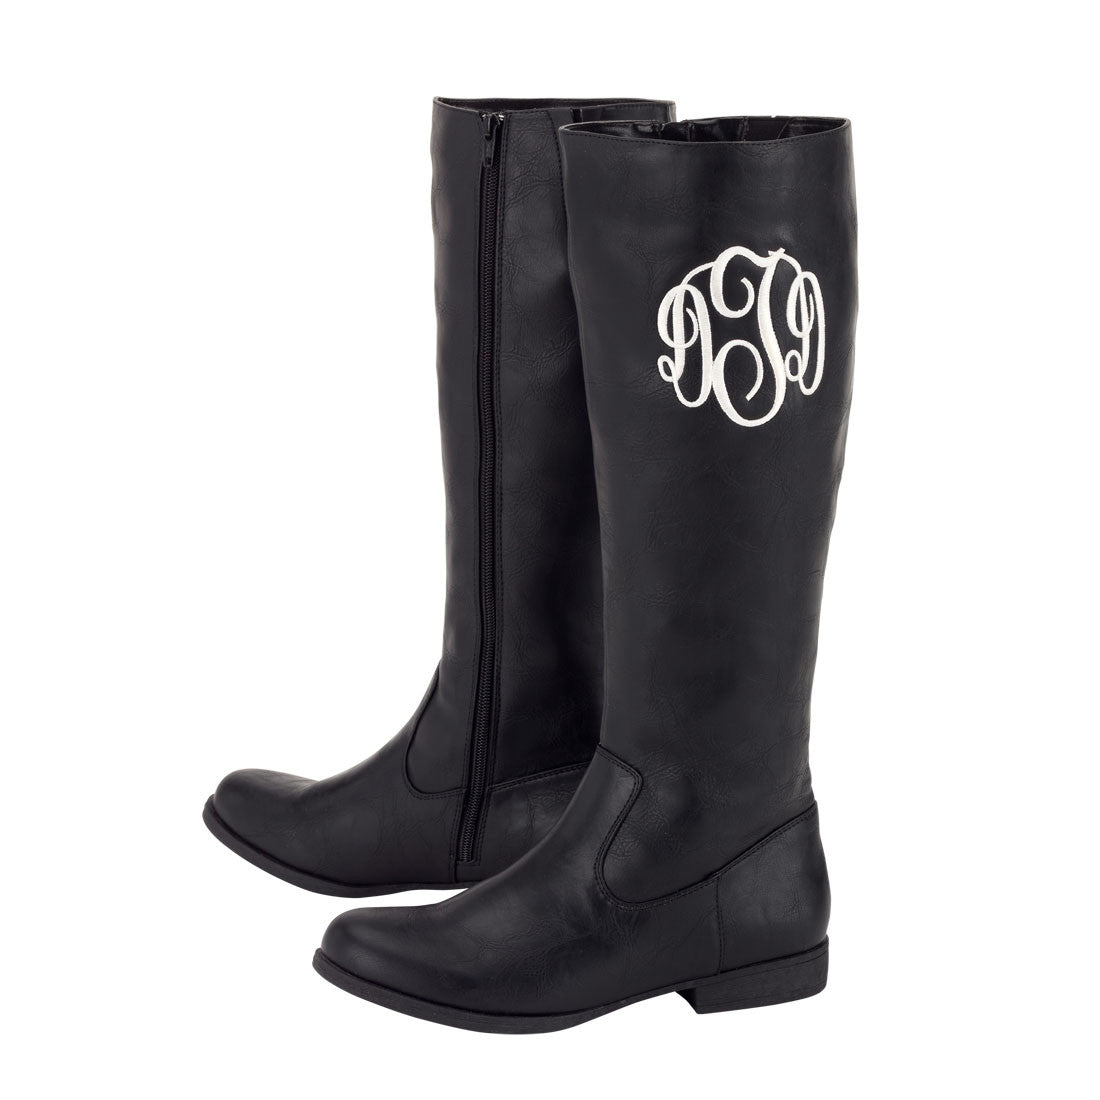 Monogrammed Boots